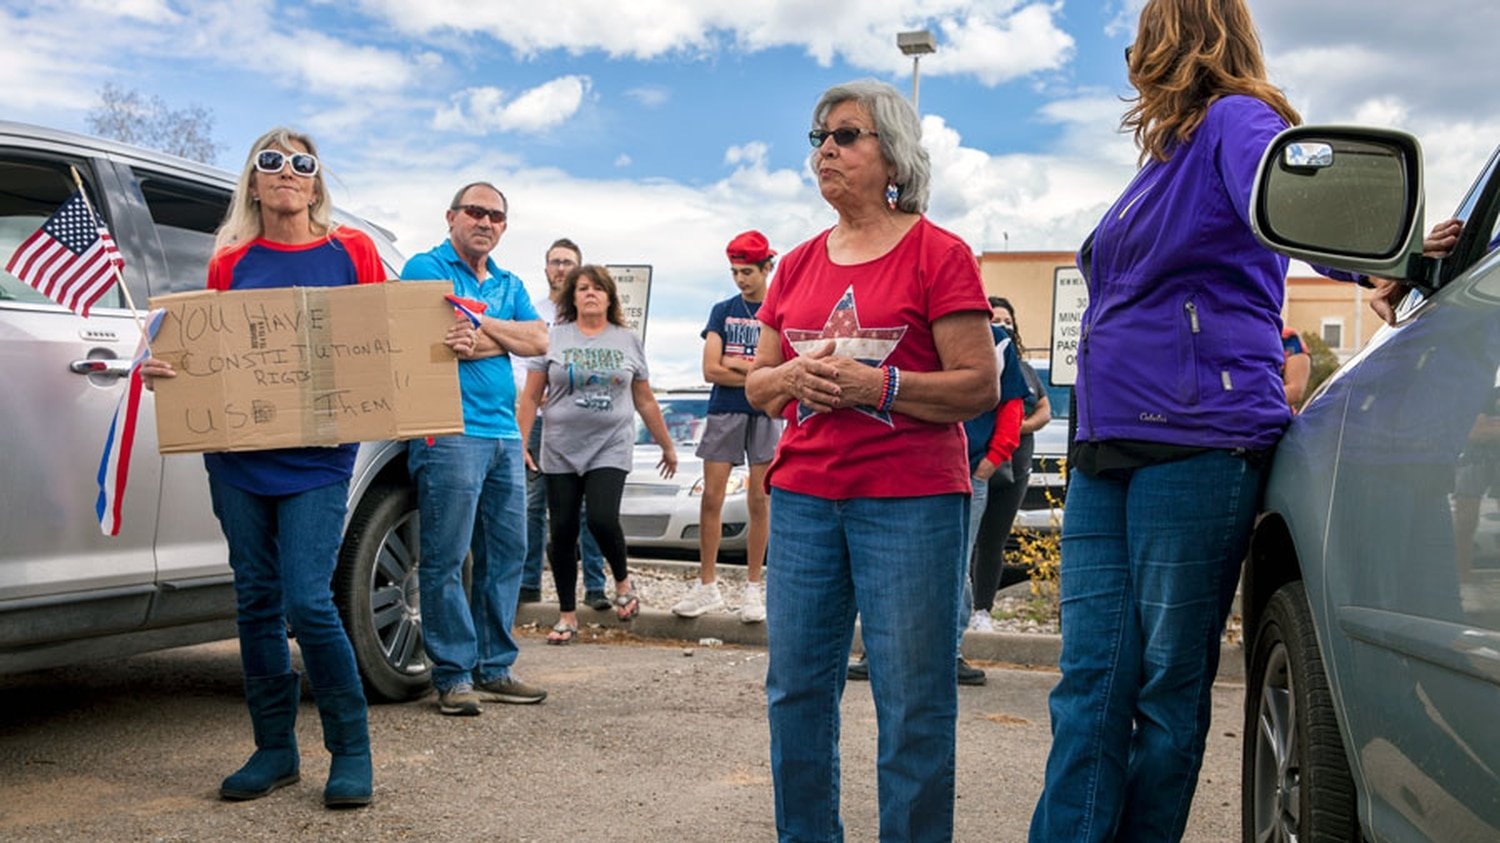 (From left to right) Terri Chrisman, Marcella Melendez and Debra Gowen mingle outside of their vehicles after the protest.